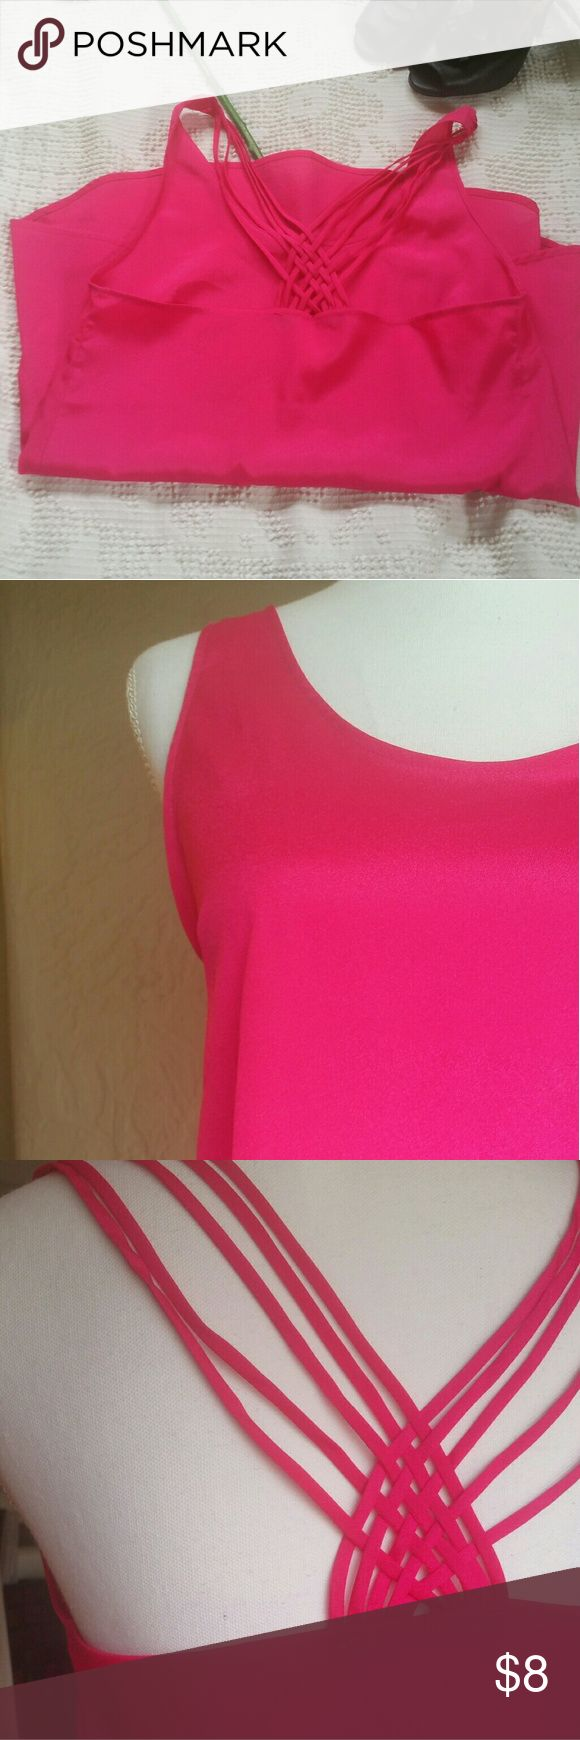 """Love J pink strappy top Beautiful, flowy tank top with gorgeous strappy detail in the back. High-low hem, bright pink color. In excellent used, like new condition.  Size small: 34"""" bust, 24"""" front length, 29"""" back length love J Tops Tank Tops"""